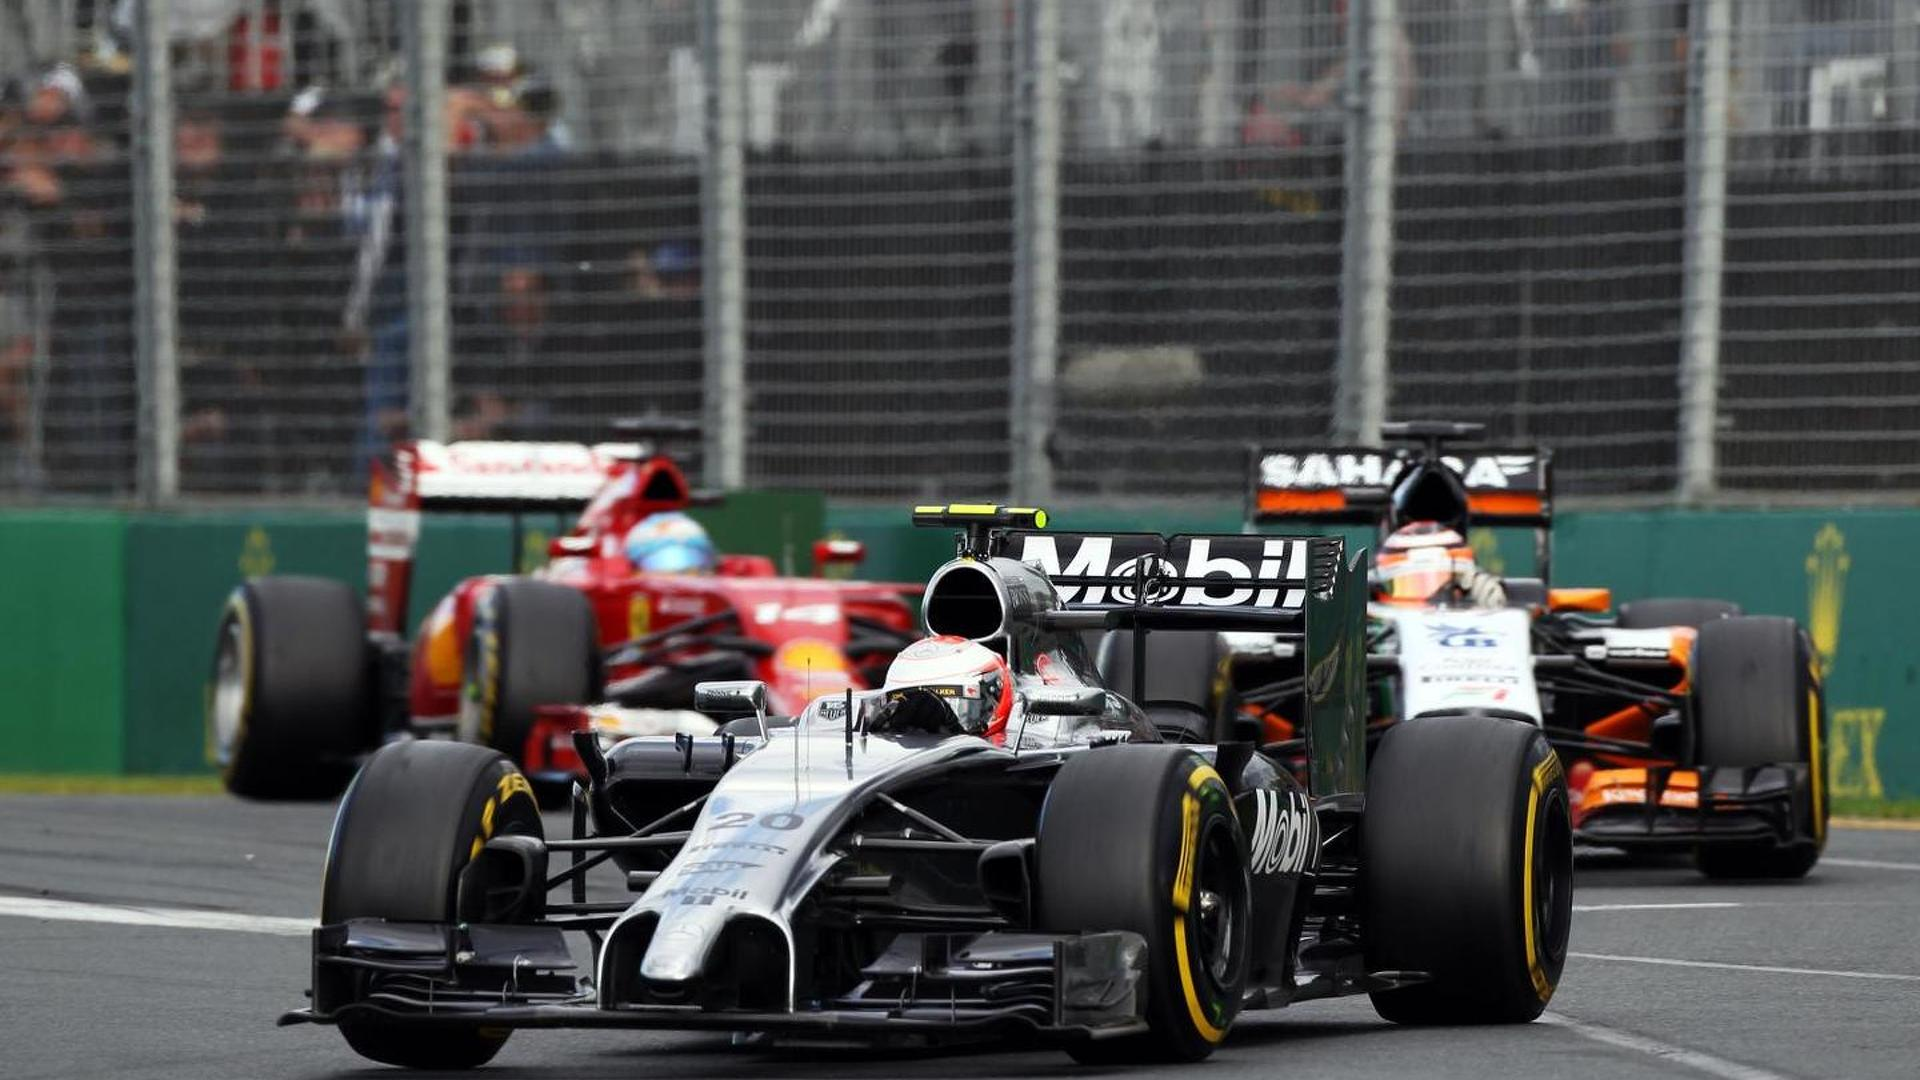 Magnussen can win titles after 2015 'pause' - Dennis